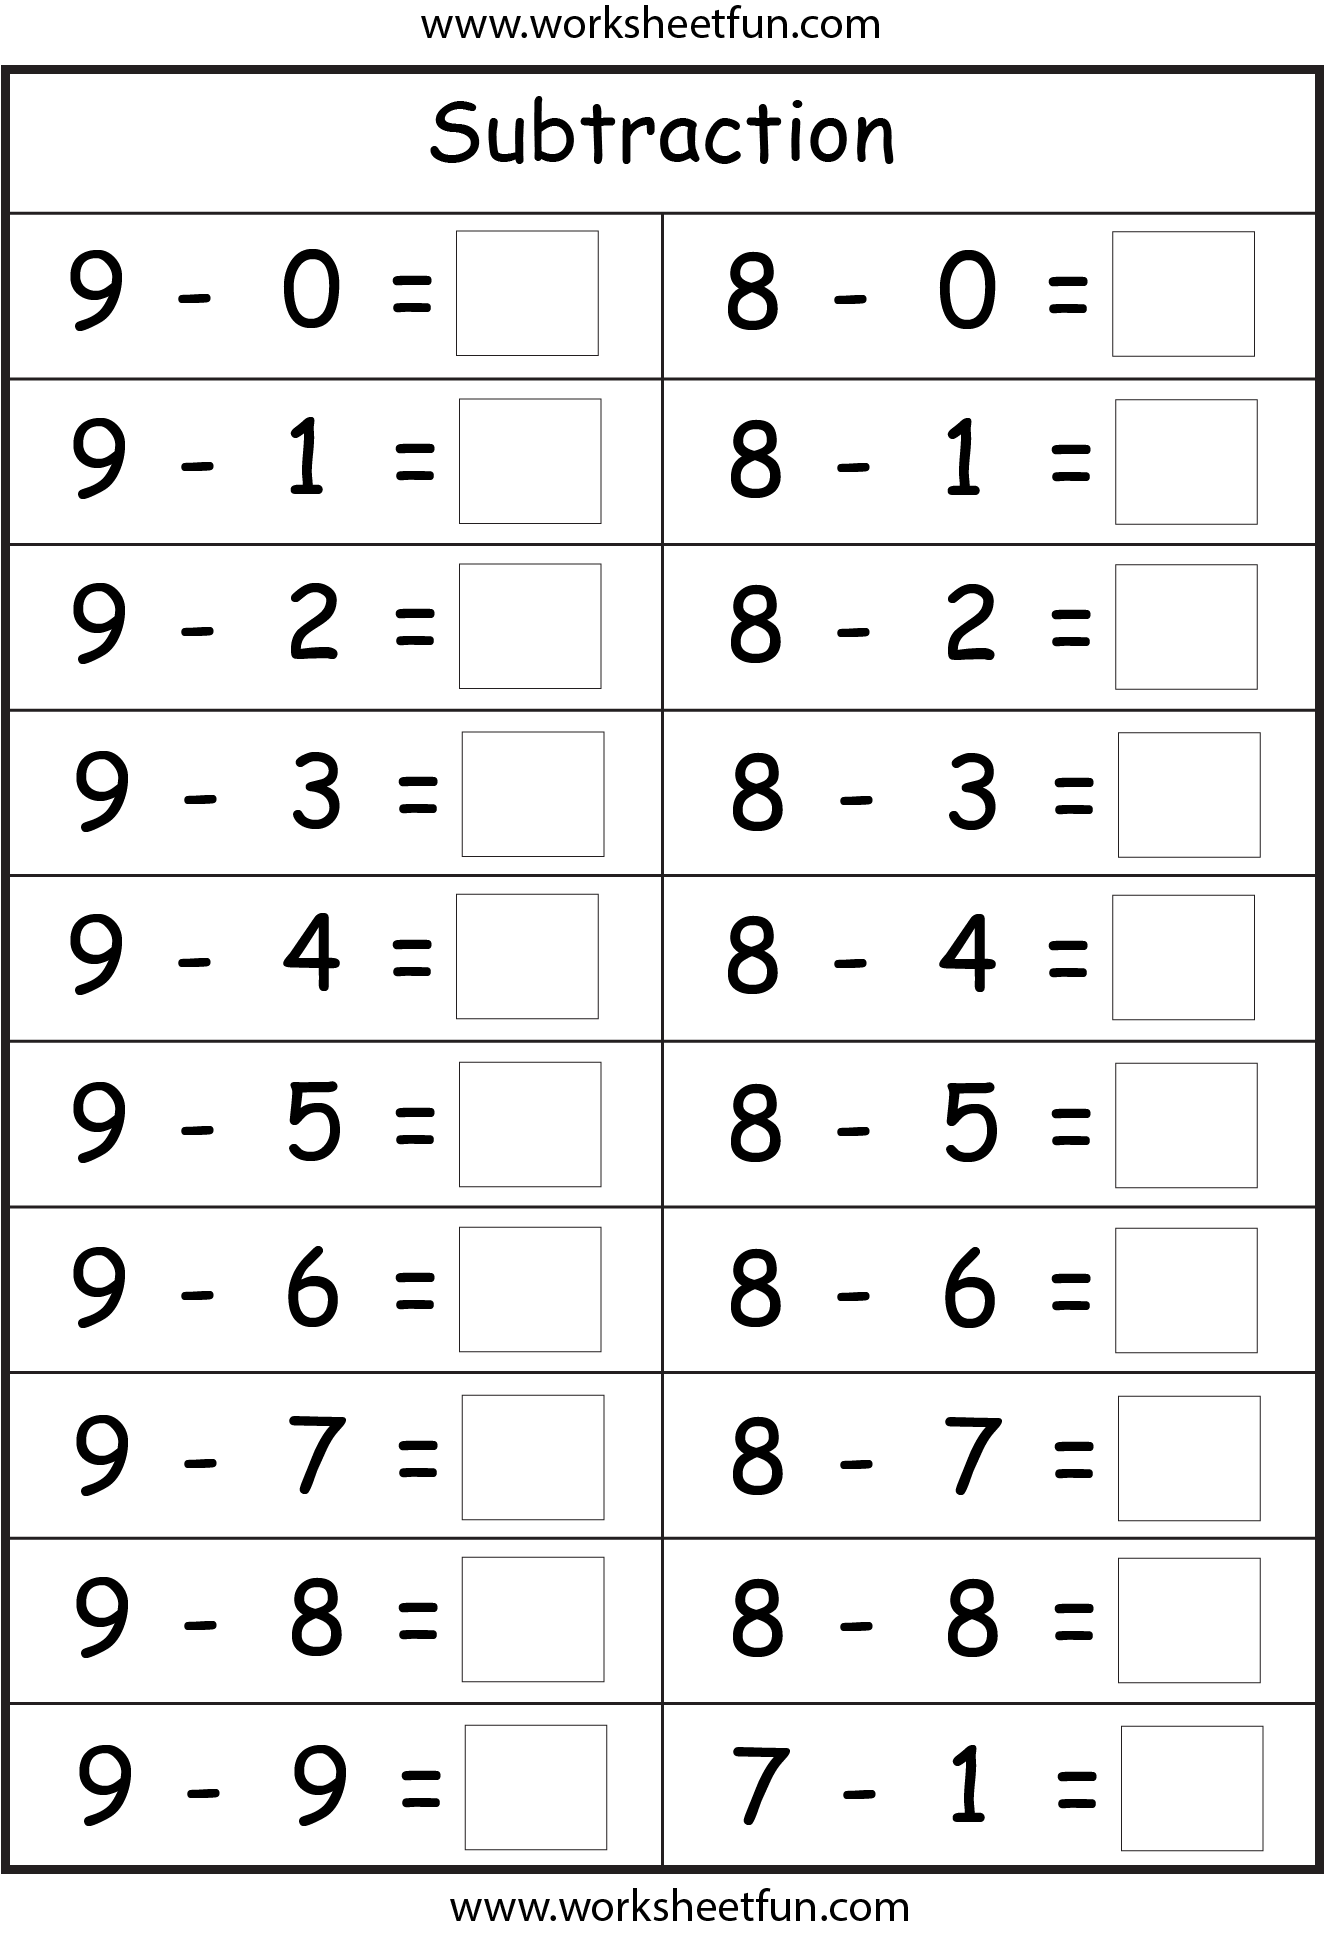 Subtraction 4 Worksheets Printable Worksheets – Kindergarten Math Subtraction Worksheets